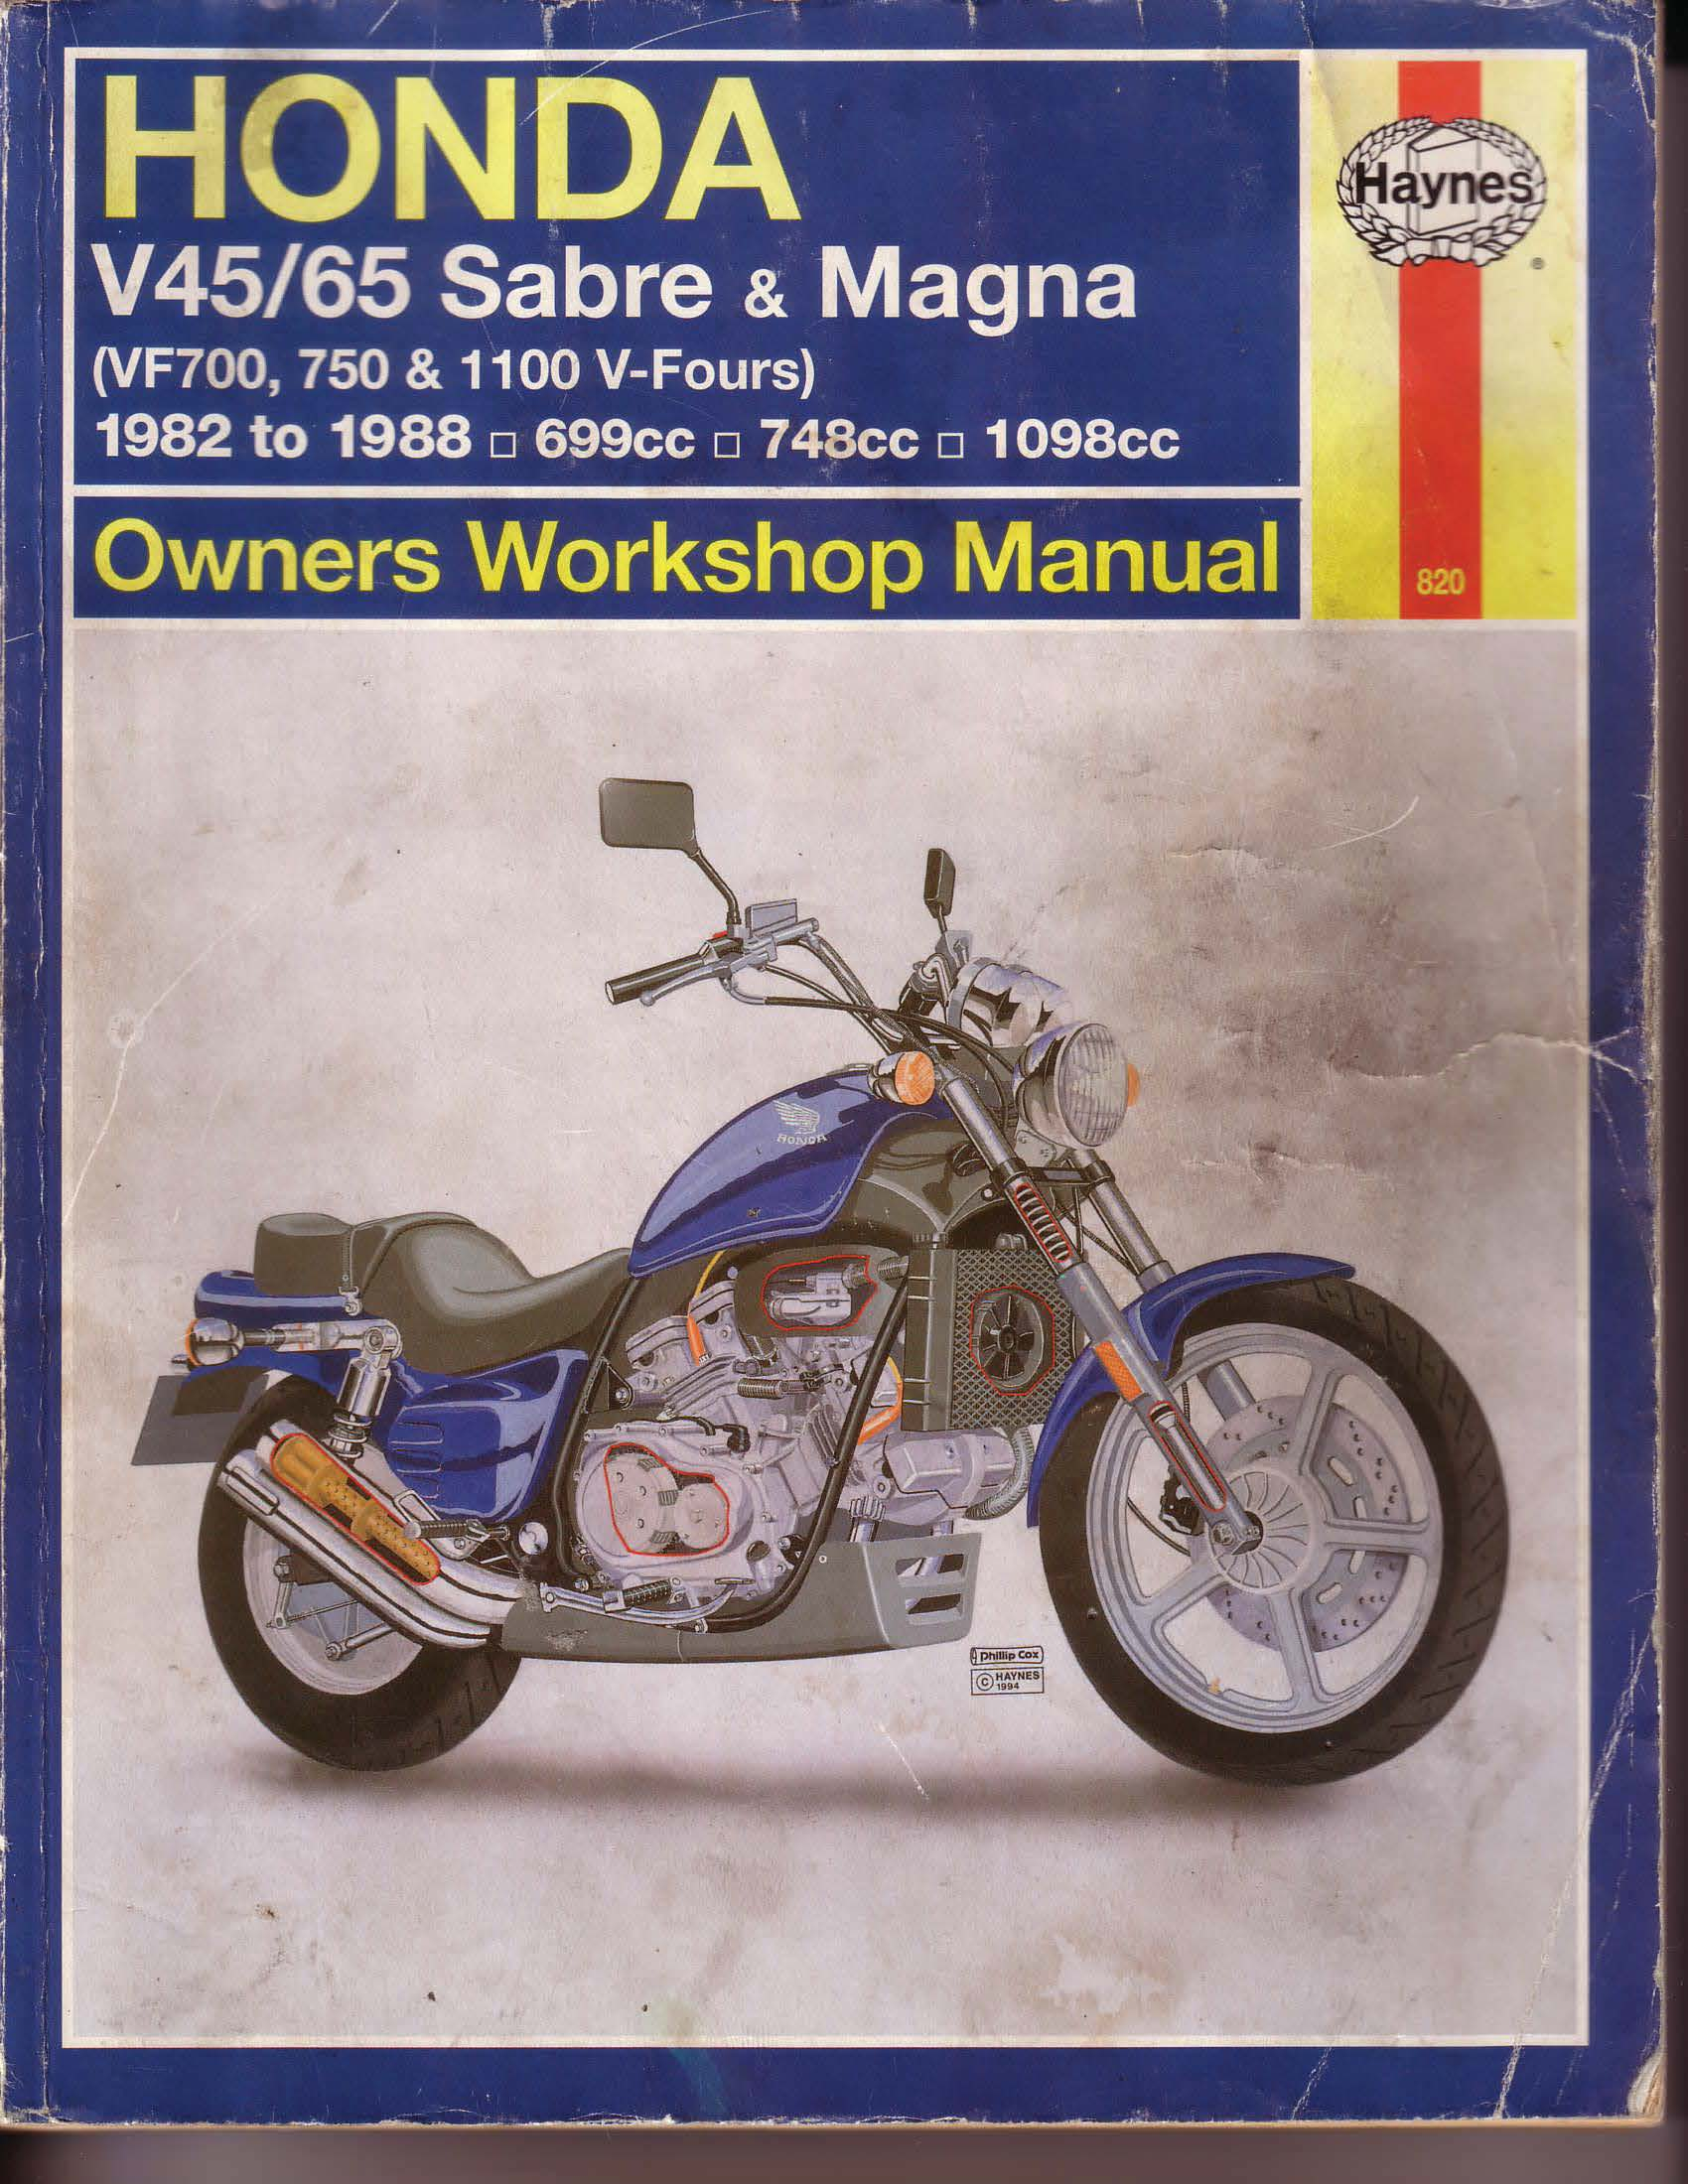 Workshopmanual for Honda VF750 V45/V65 - Sabre/Magna (1982-1988)